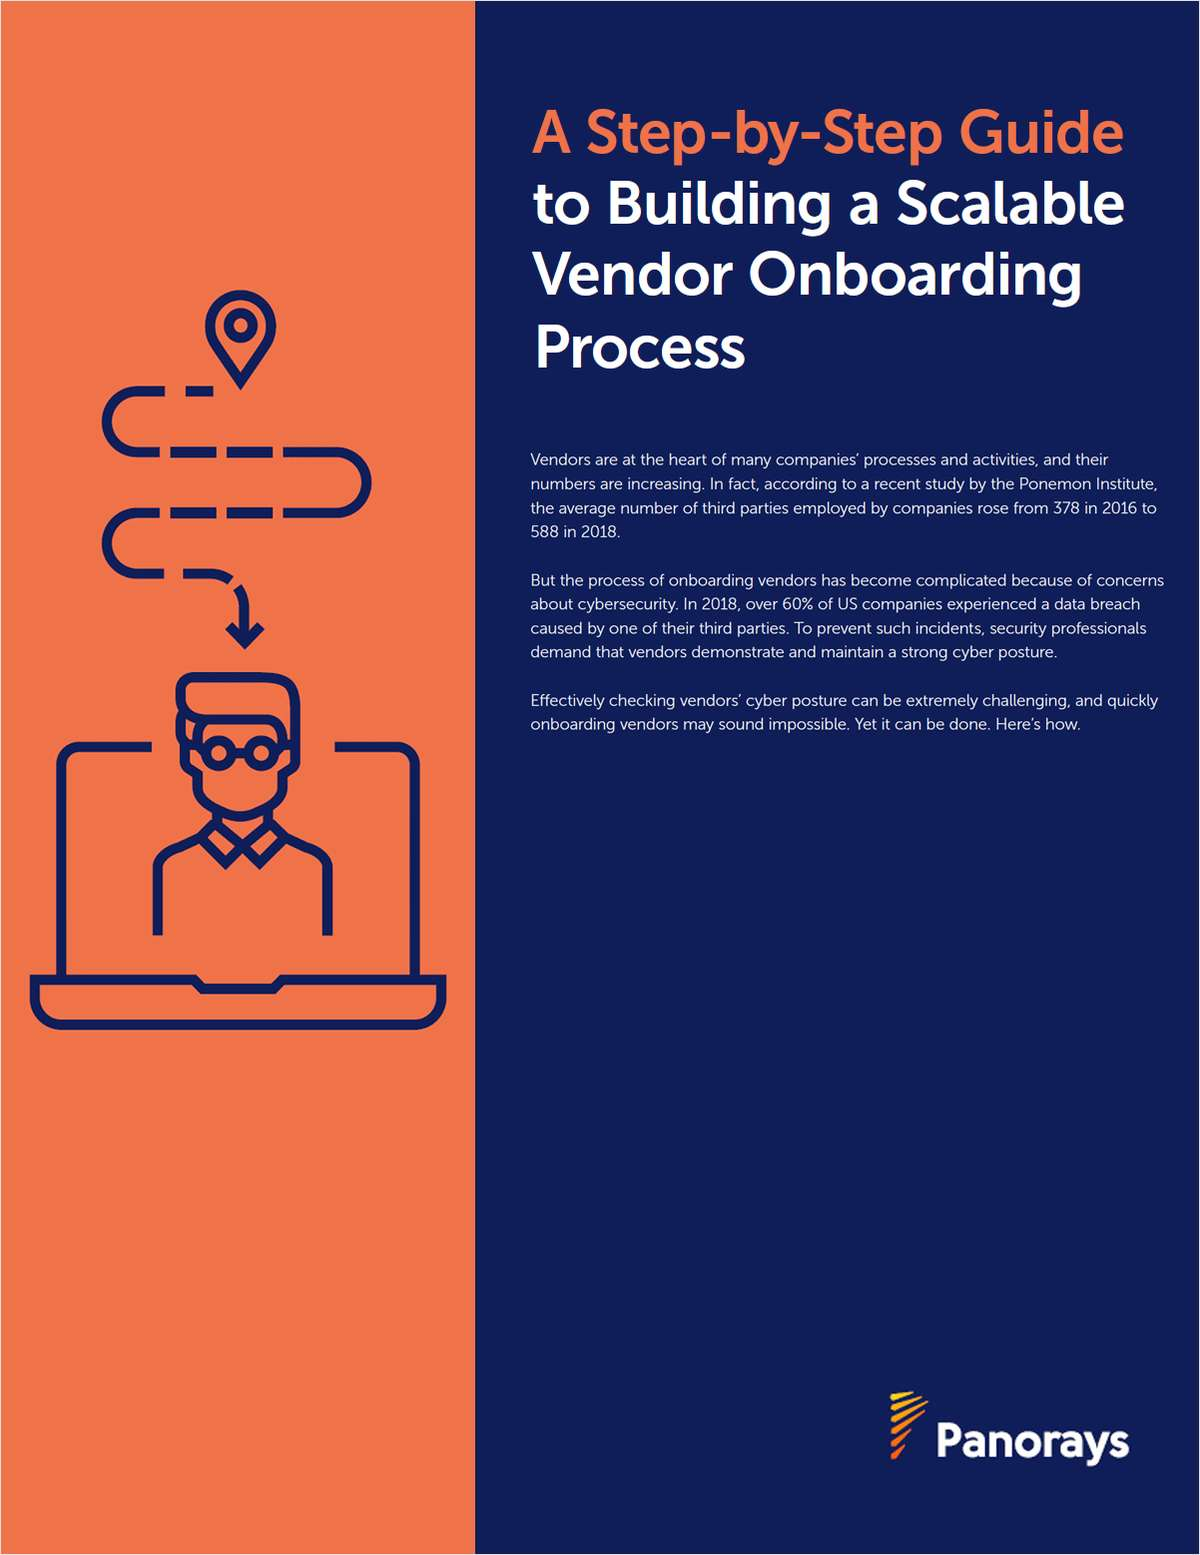 A Step-By-Step Guide to Building a Scalable Vendor Onboarding Process